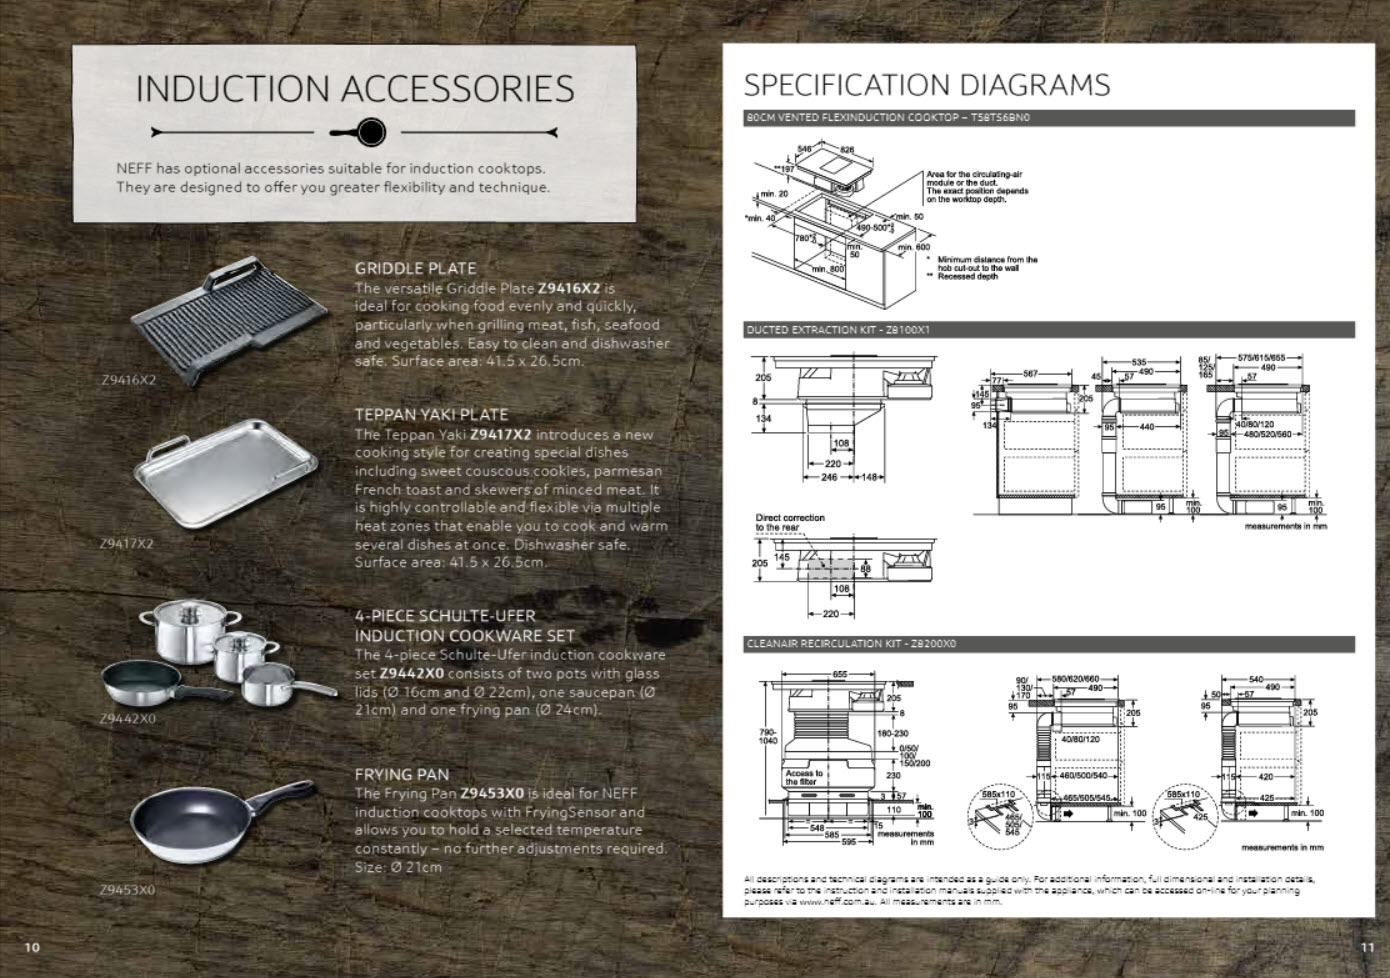 NEFF T58TS6BN0 80cm Vented FlexInduction Cooktop Overview Brochure 6